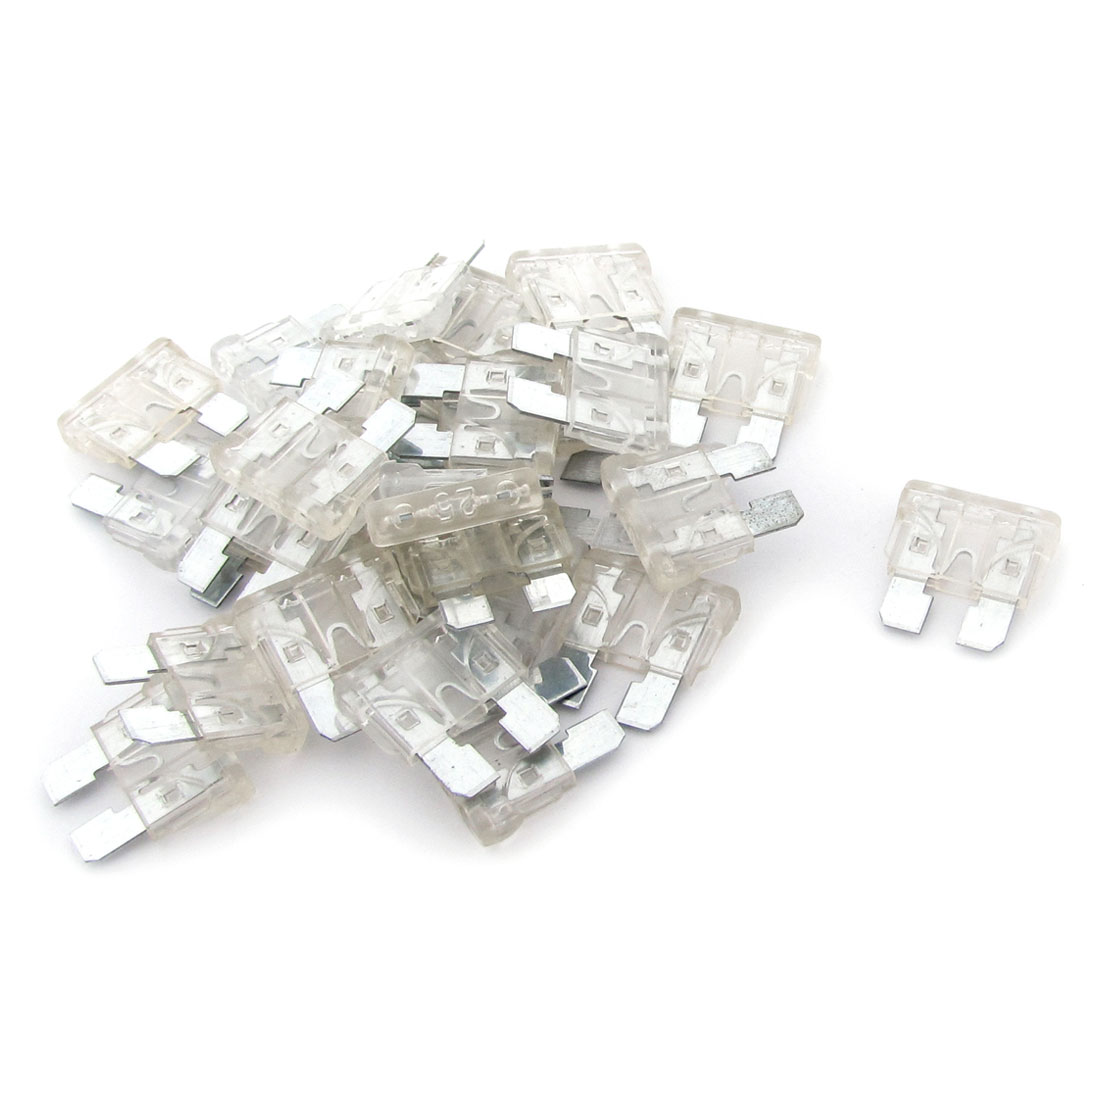 30PCS Clear Medium Car Bike Truck Blade Fuse 25A